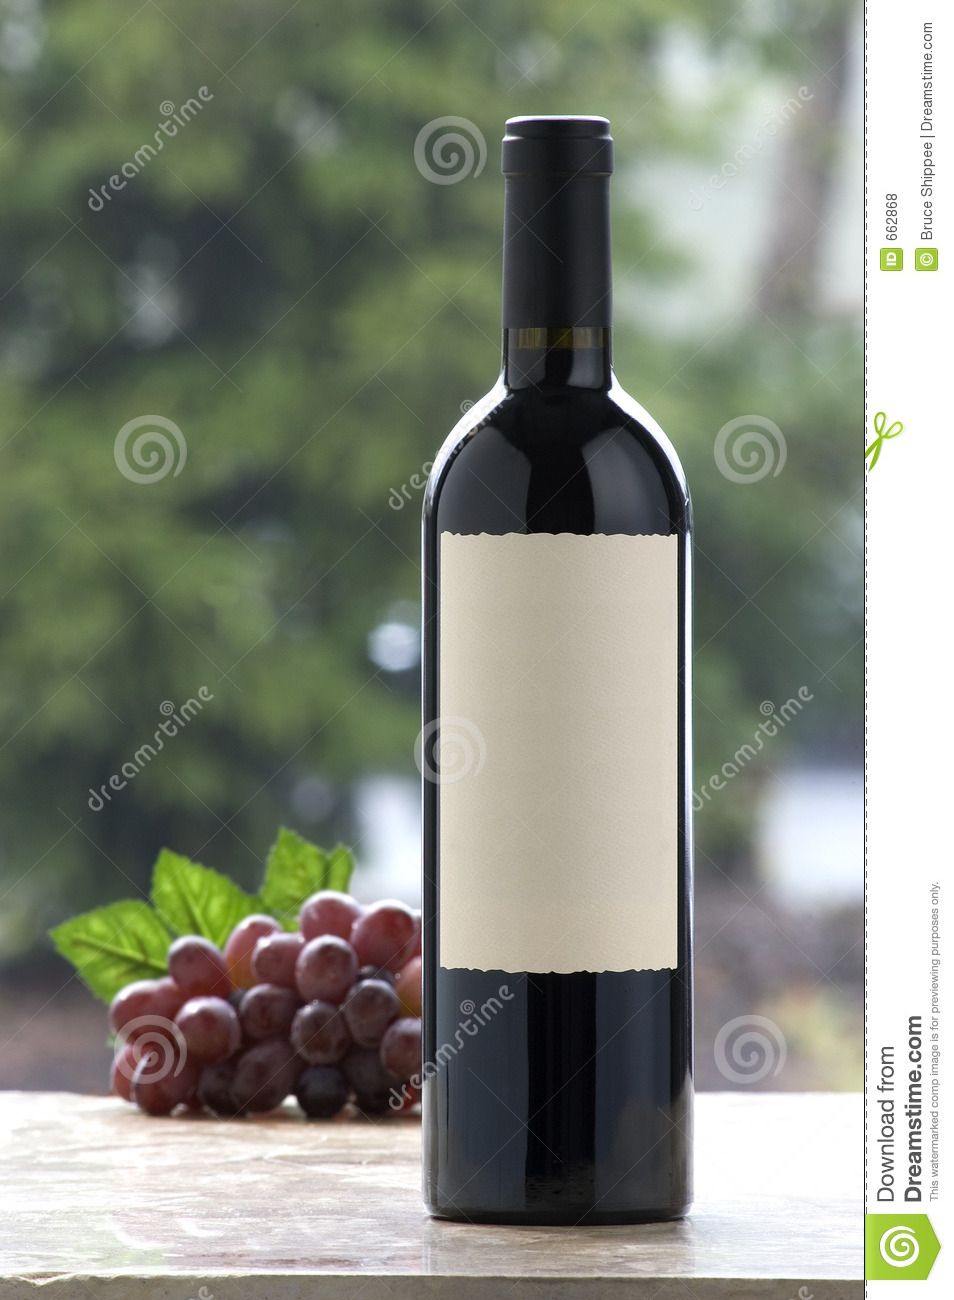 Blank Wine Label Royalty Free Stock Photos  Image 662868